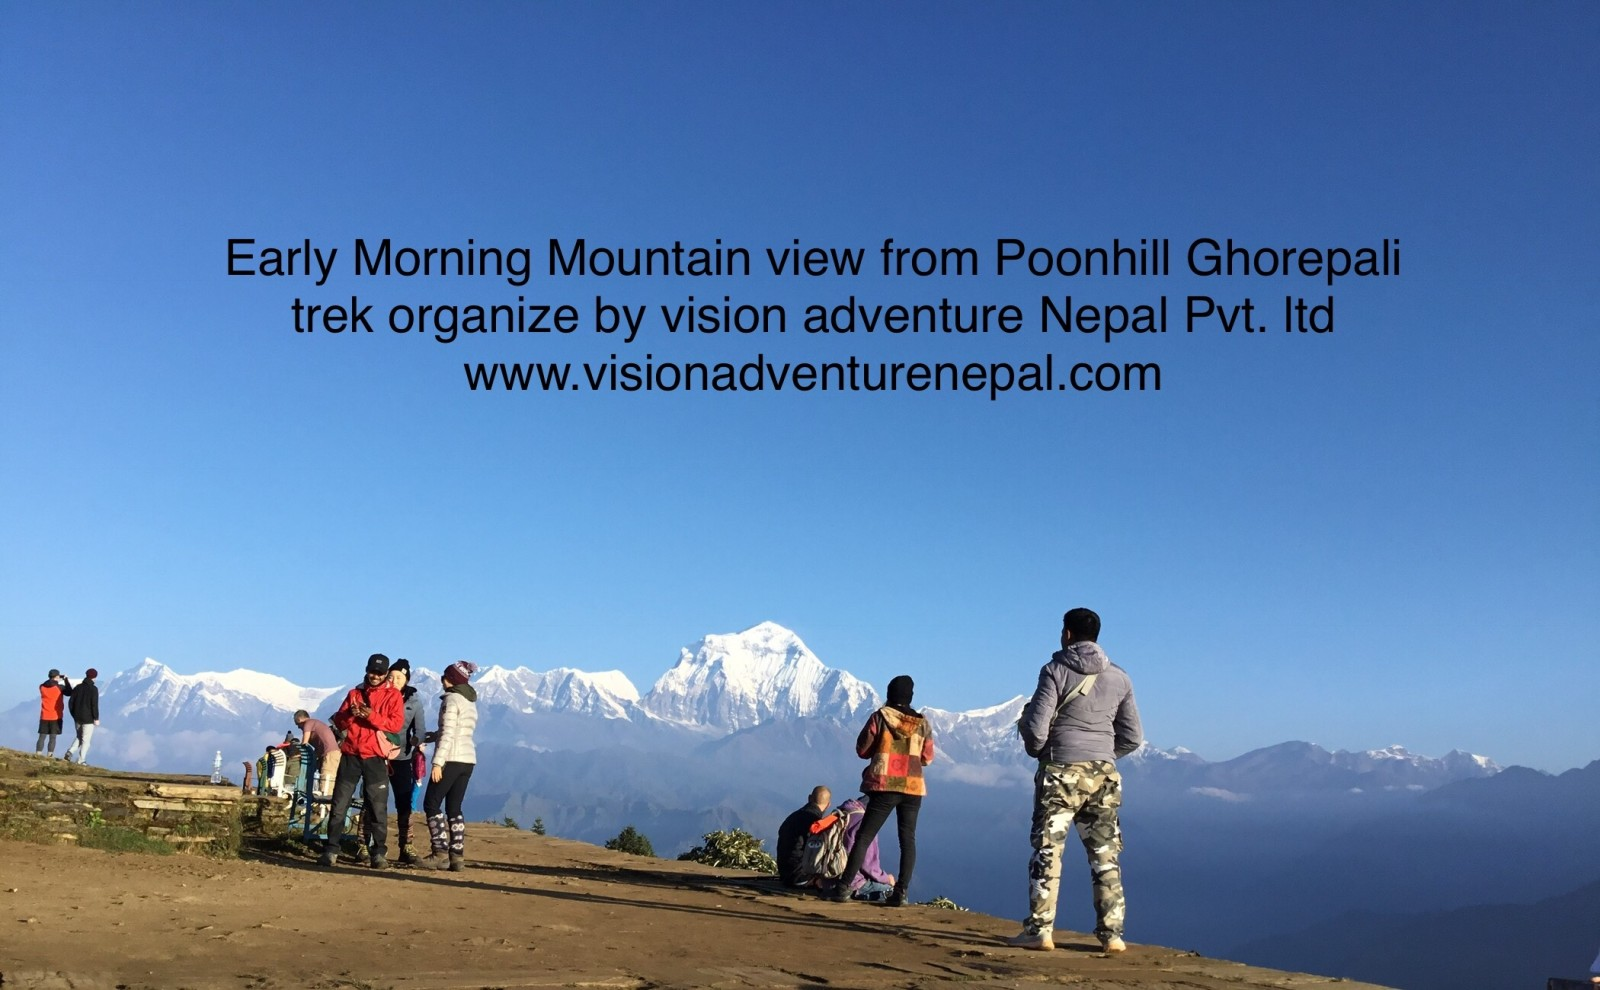 4 Days Ghorepani Poonhill Trek $350 per person